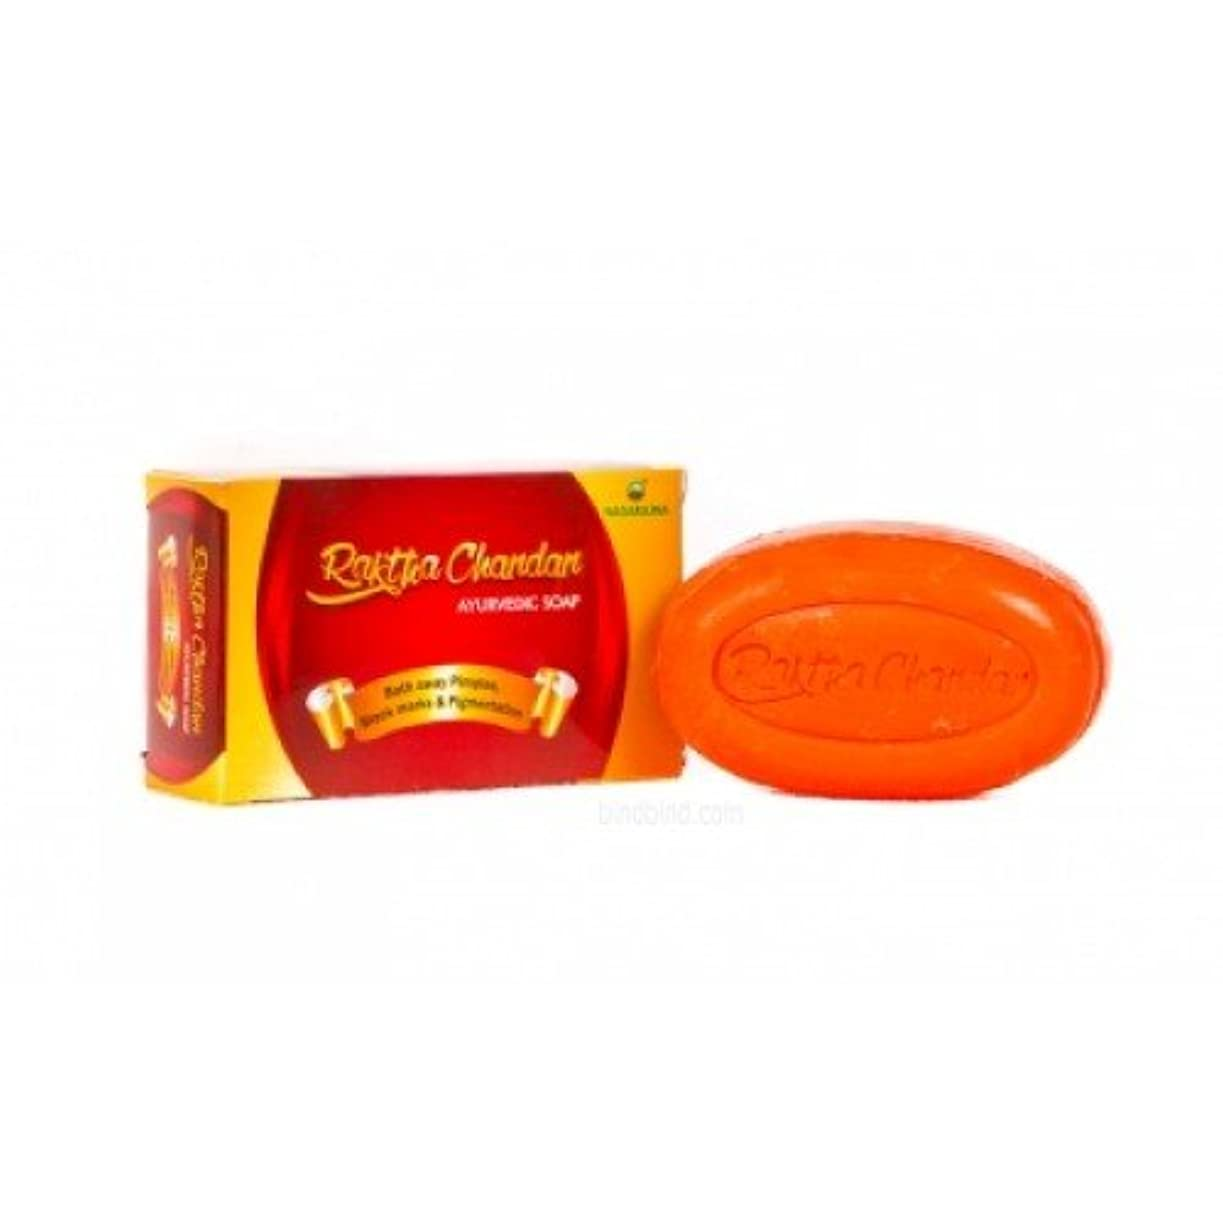 なにバウンスペナルティNagarjuna Raktha Chandan Ayurvedic Soap Best For Glowing Skin